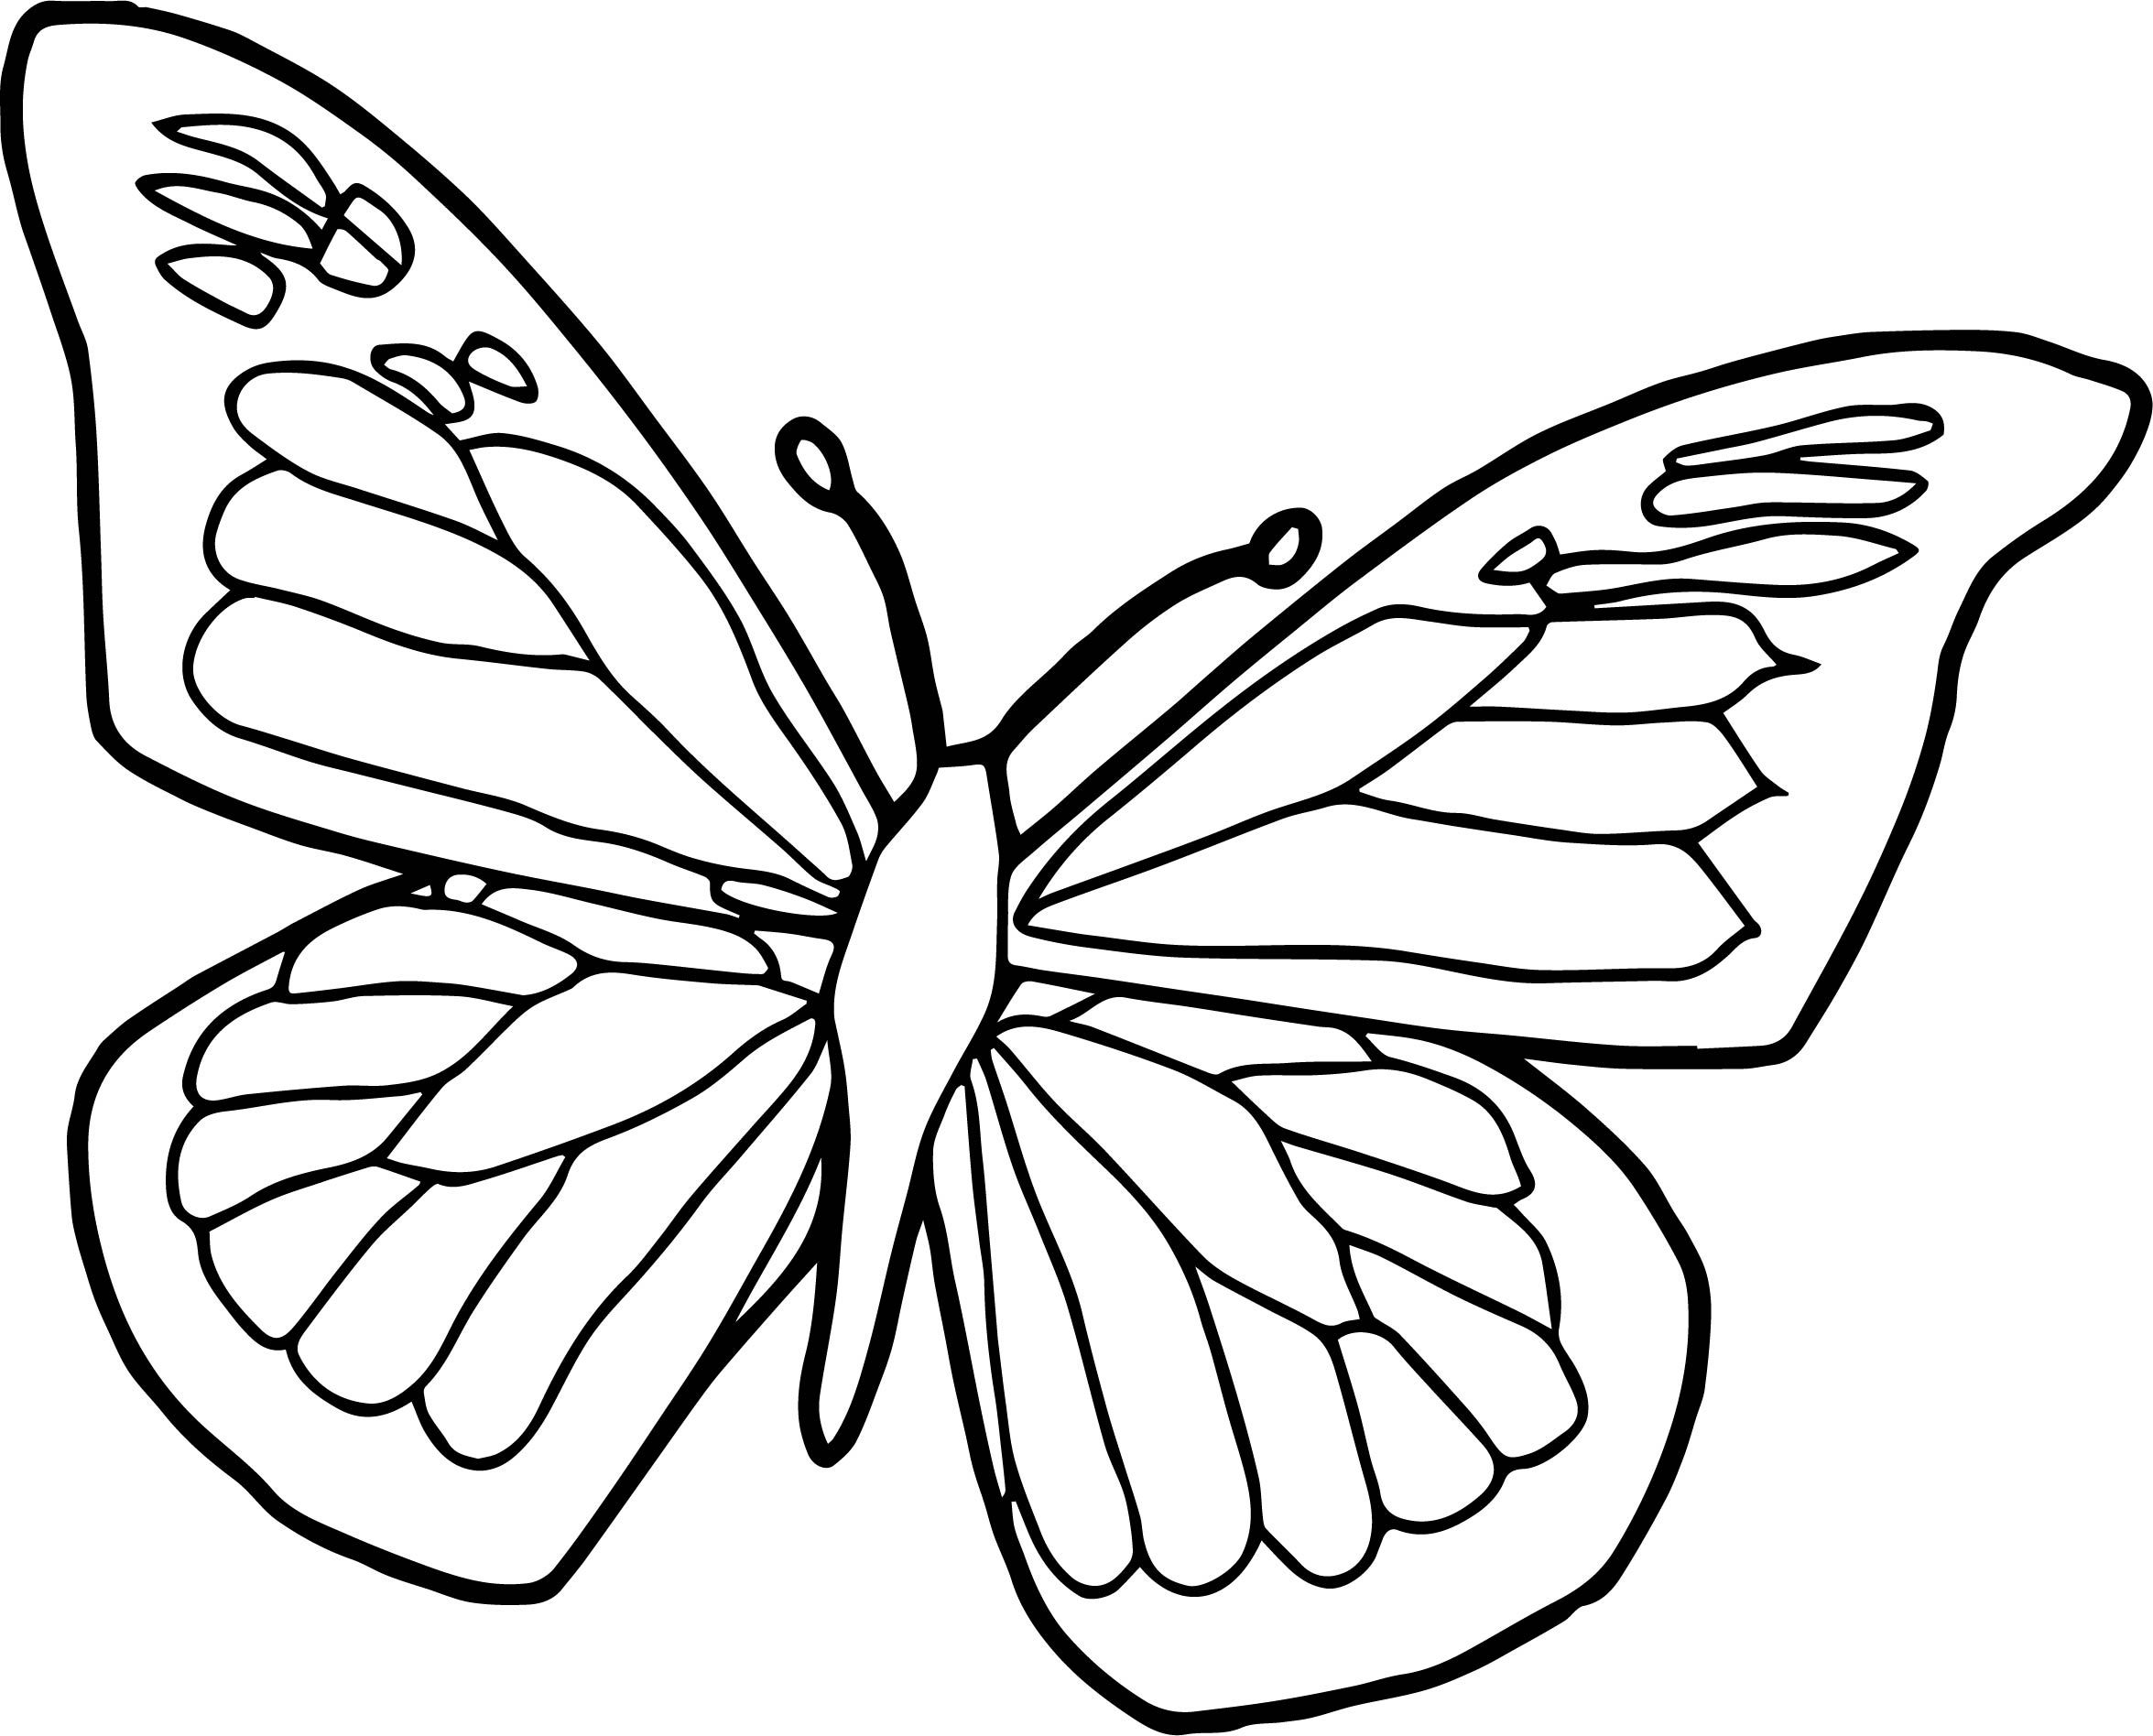 Cool Blue Black Butterfly Coloring Page Butterfly Coloring Page Butterfly Printable Insect Coloring Pages